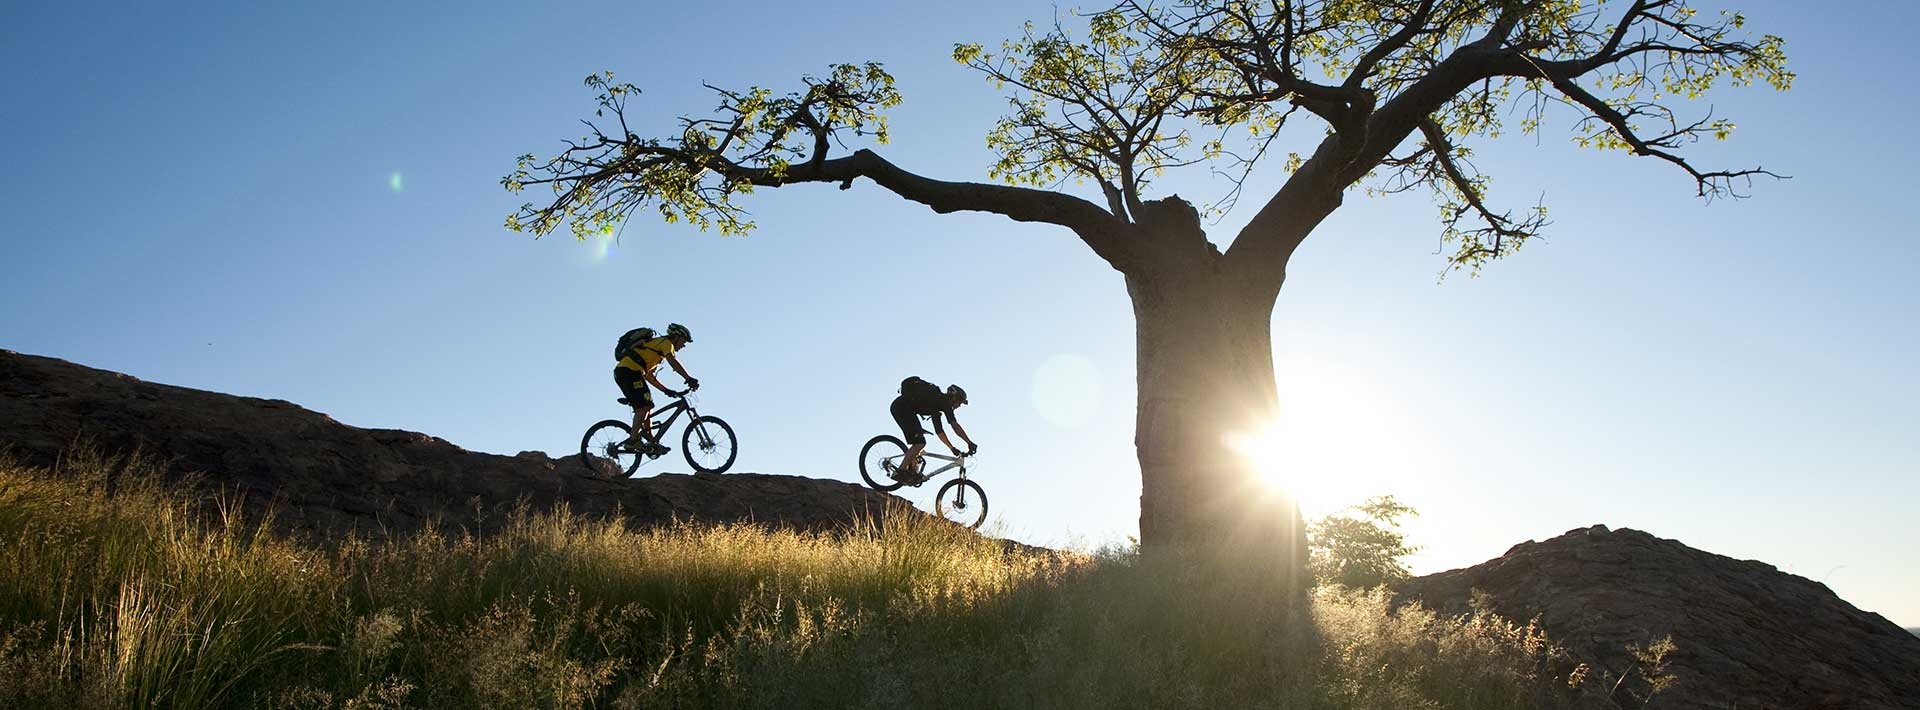 botswana hans rey mountain bike alpstours tour